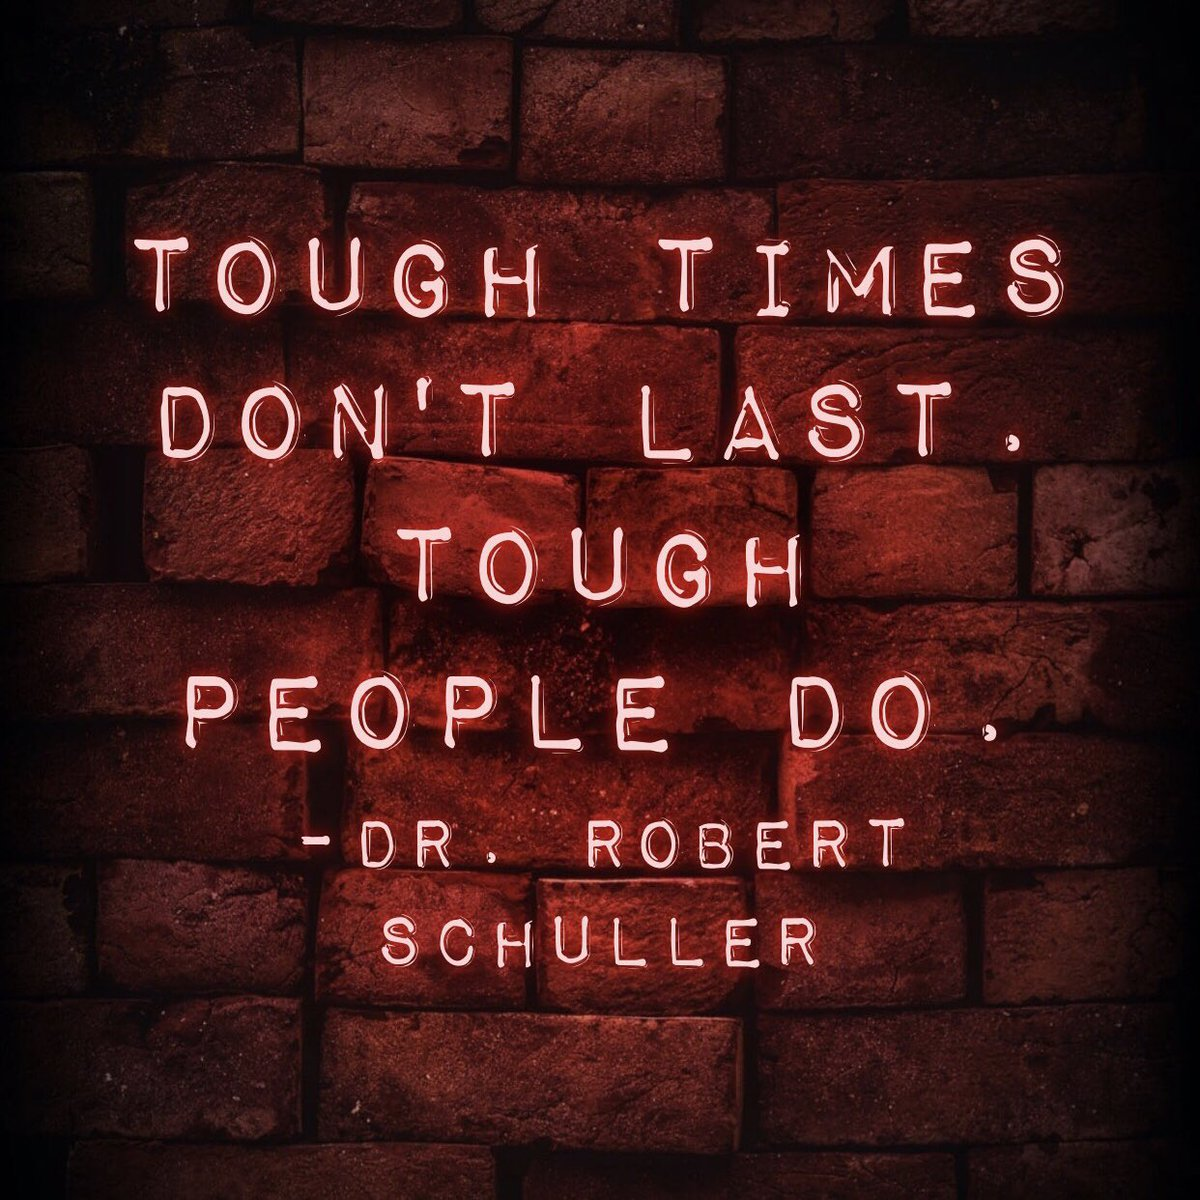 BE TOUGH  #fit #fitness #fitfam #fitlife #regina #yqr #sask #motivate #dailymotivation #motivation #inspire #local #shoplocal #dailypostpic.twitter.com/zdYEi1jJok